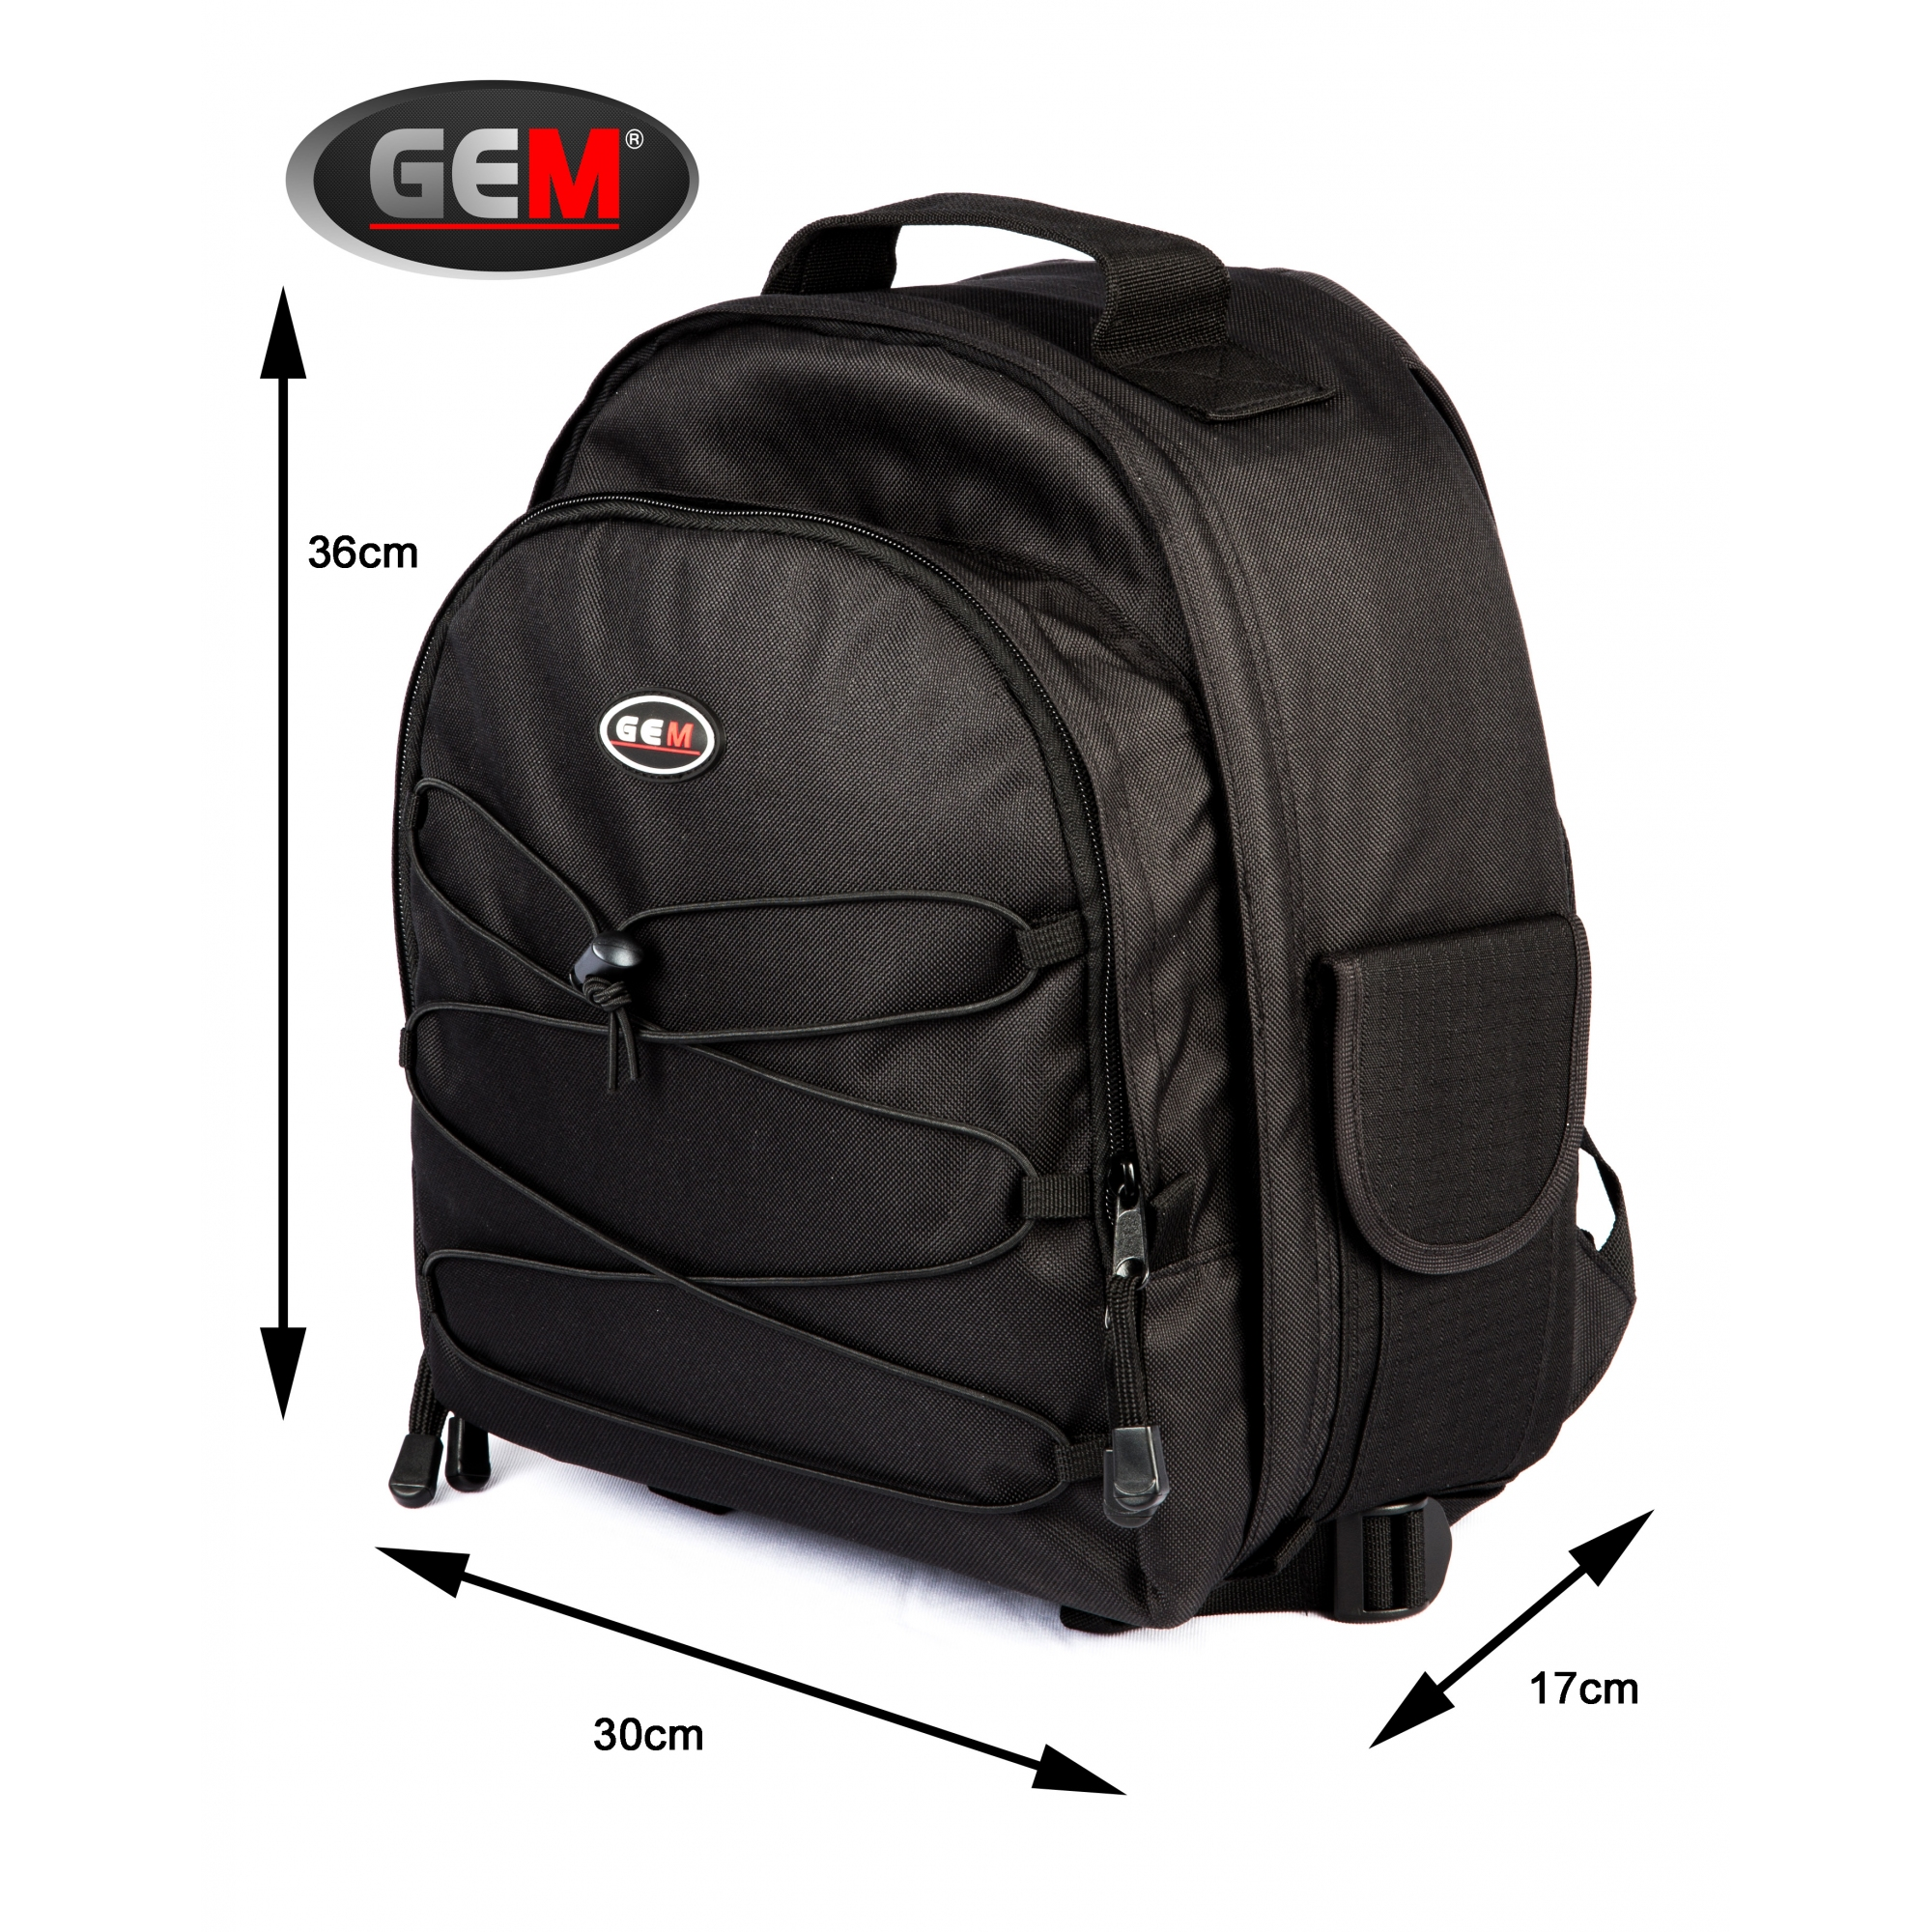 The GEM Scorpion Mini SLR Rucksack for Nikon D5100